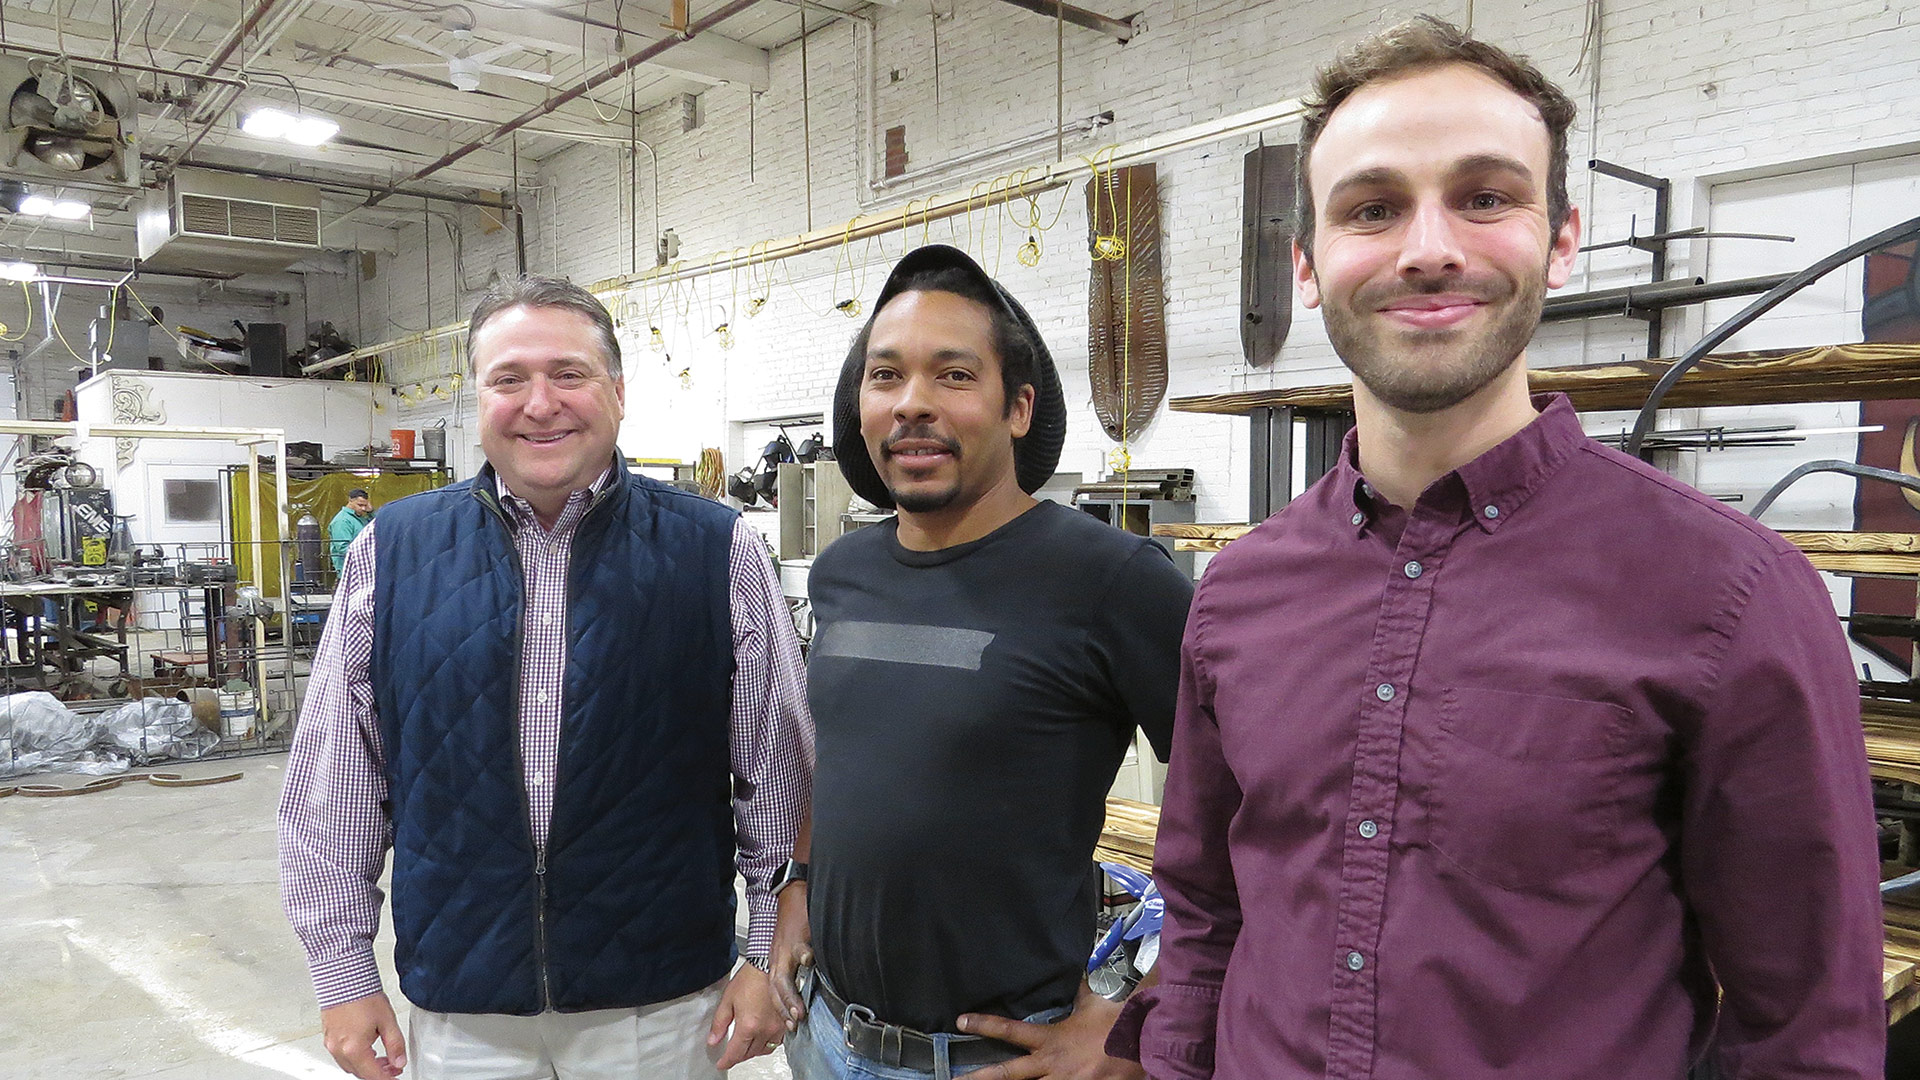 WestMass CEO Jeff Daley (left) and Sean O'Donnell (right), the agency's Economic Development planner and leasing manager, with metal sculptor Kamil Peters, who relocated to Ludlow Mills last summer.